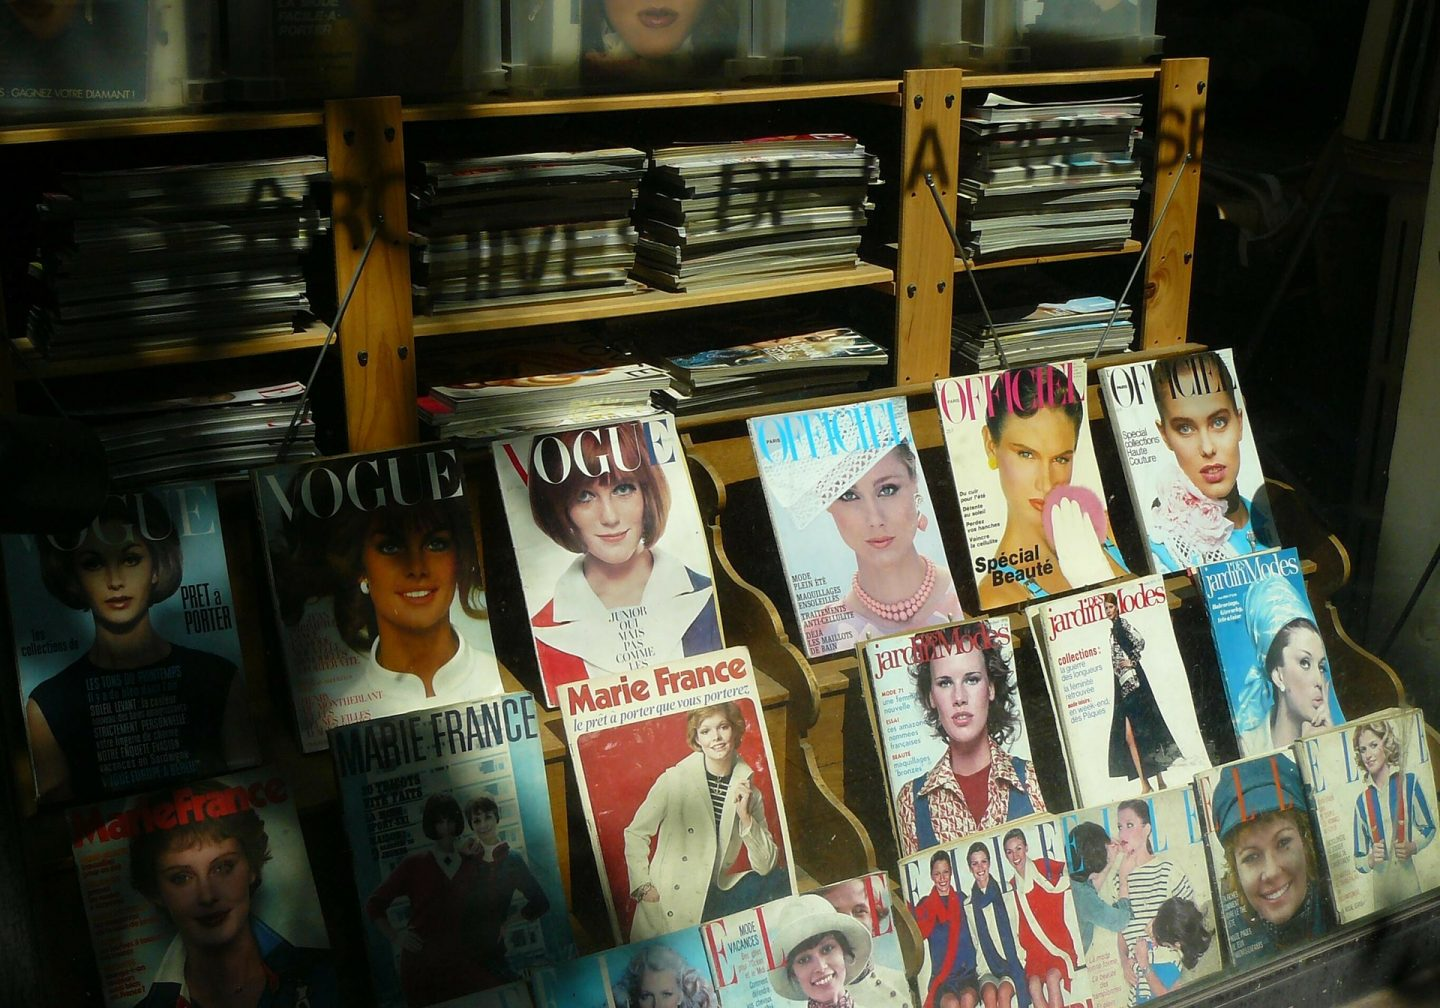 A newspaper stand showing lots of magazine